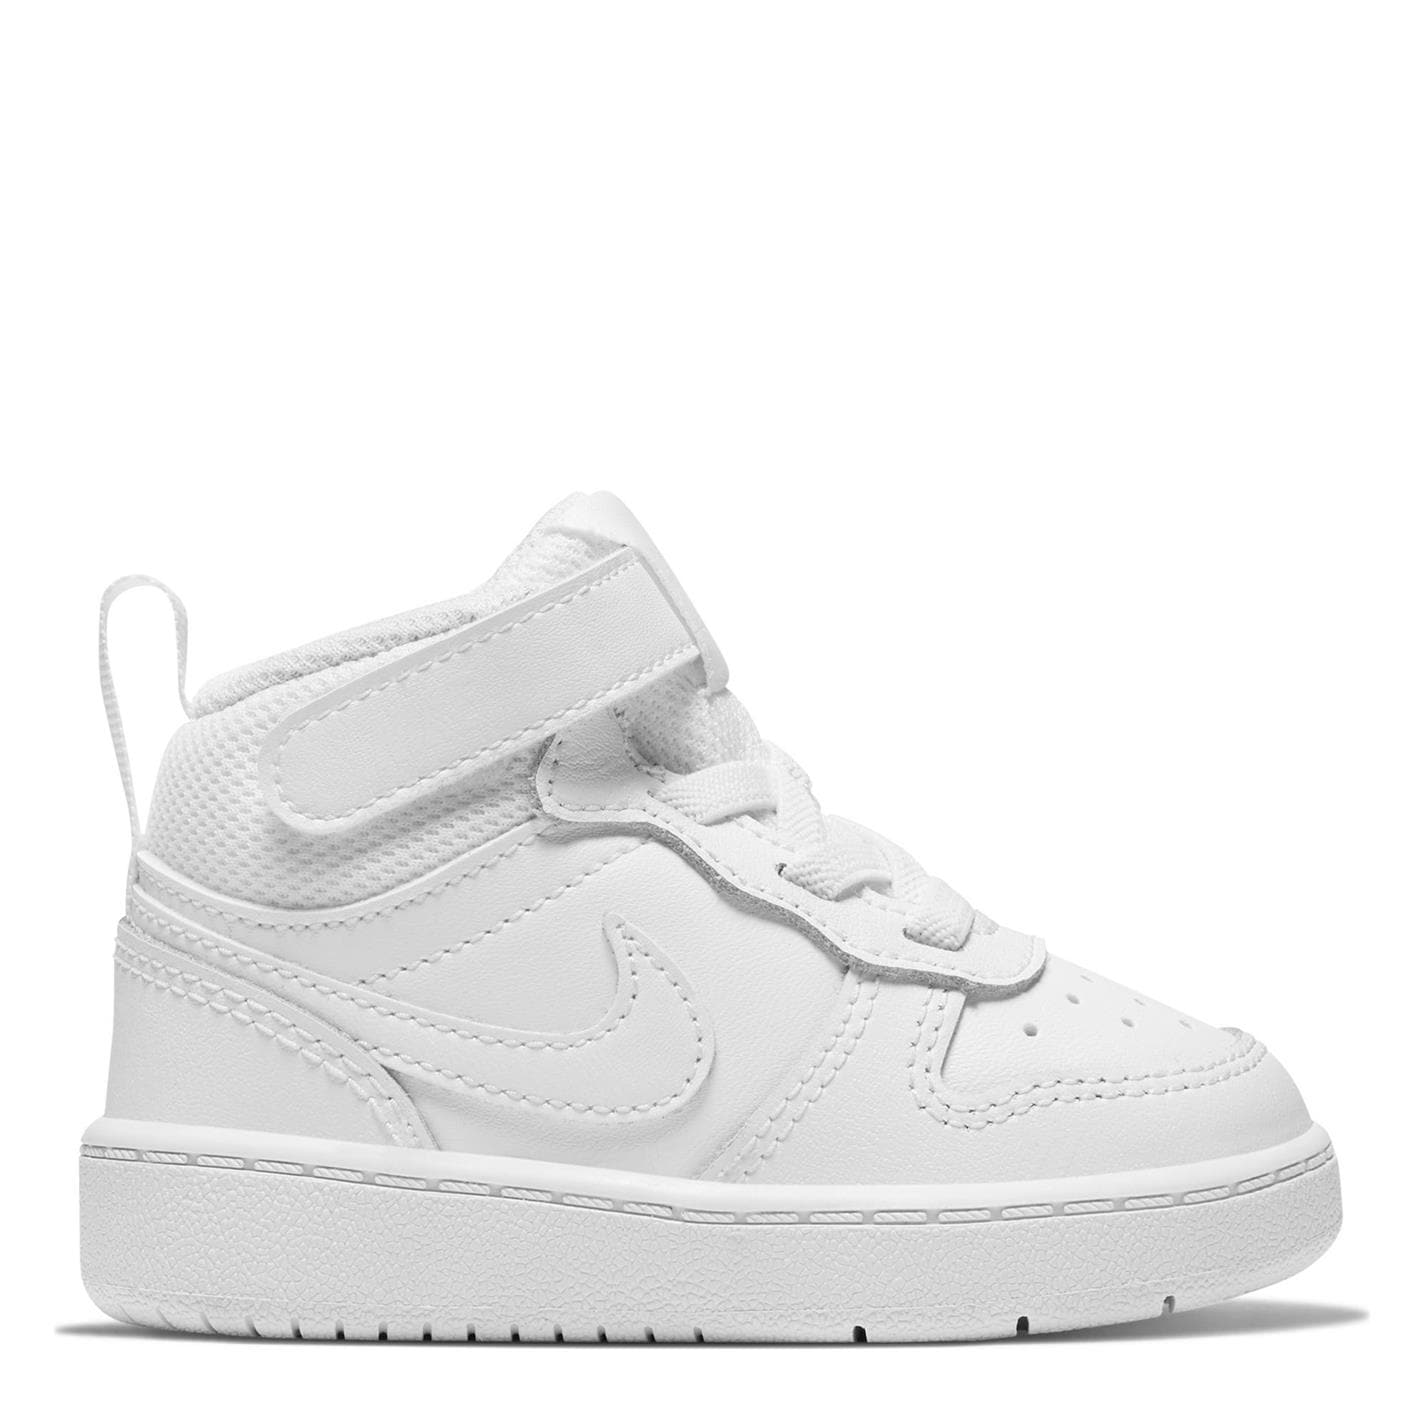 Nike Court Borough Mid 2 Baby/Toddler Shoe White/White